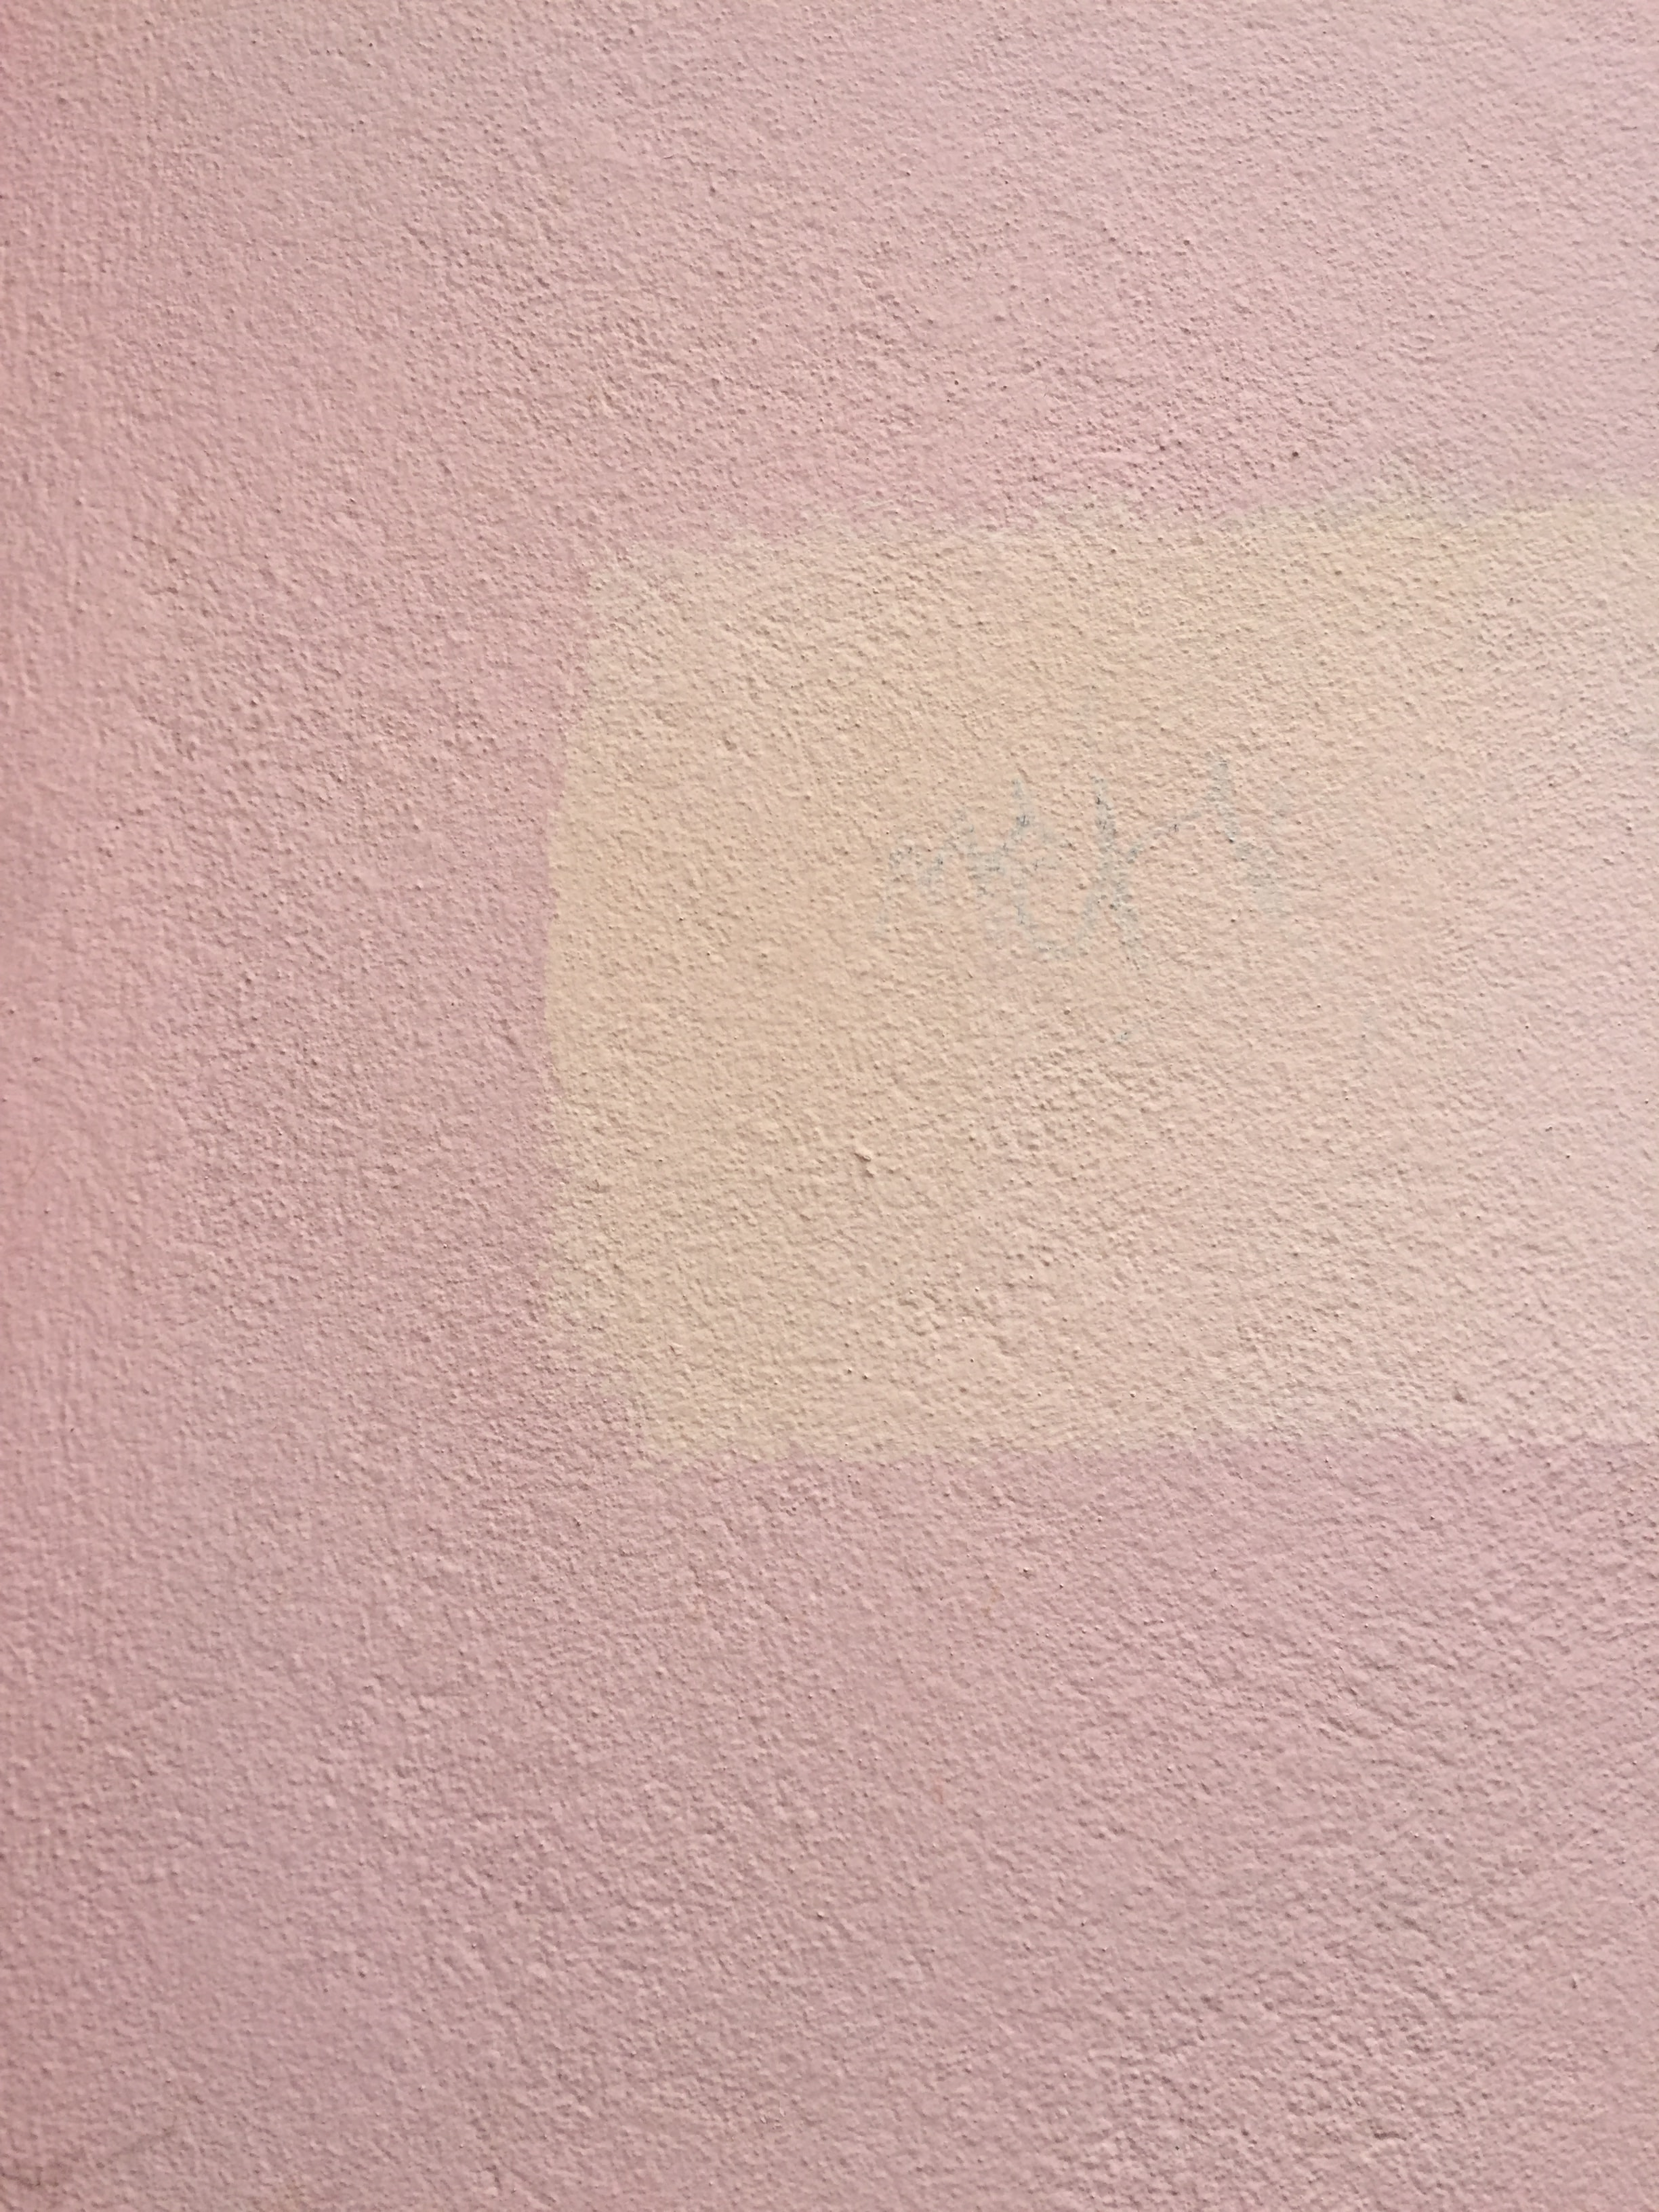 pink concrete surface